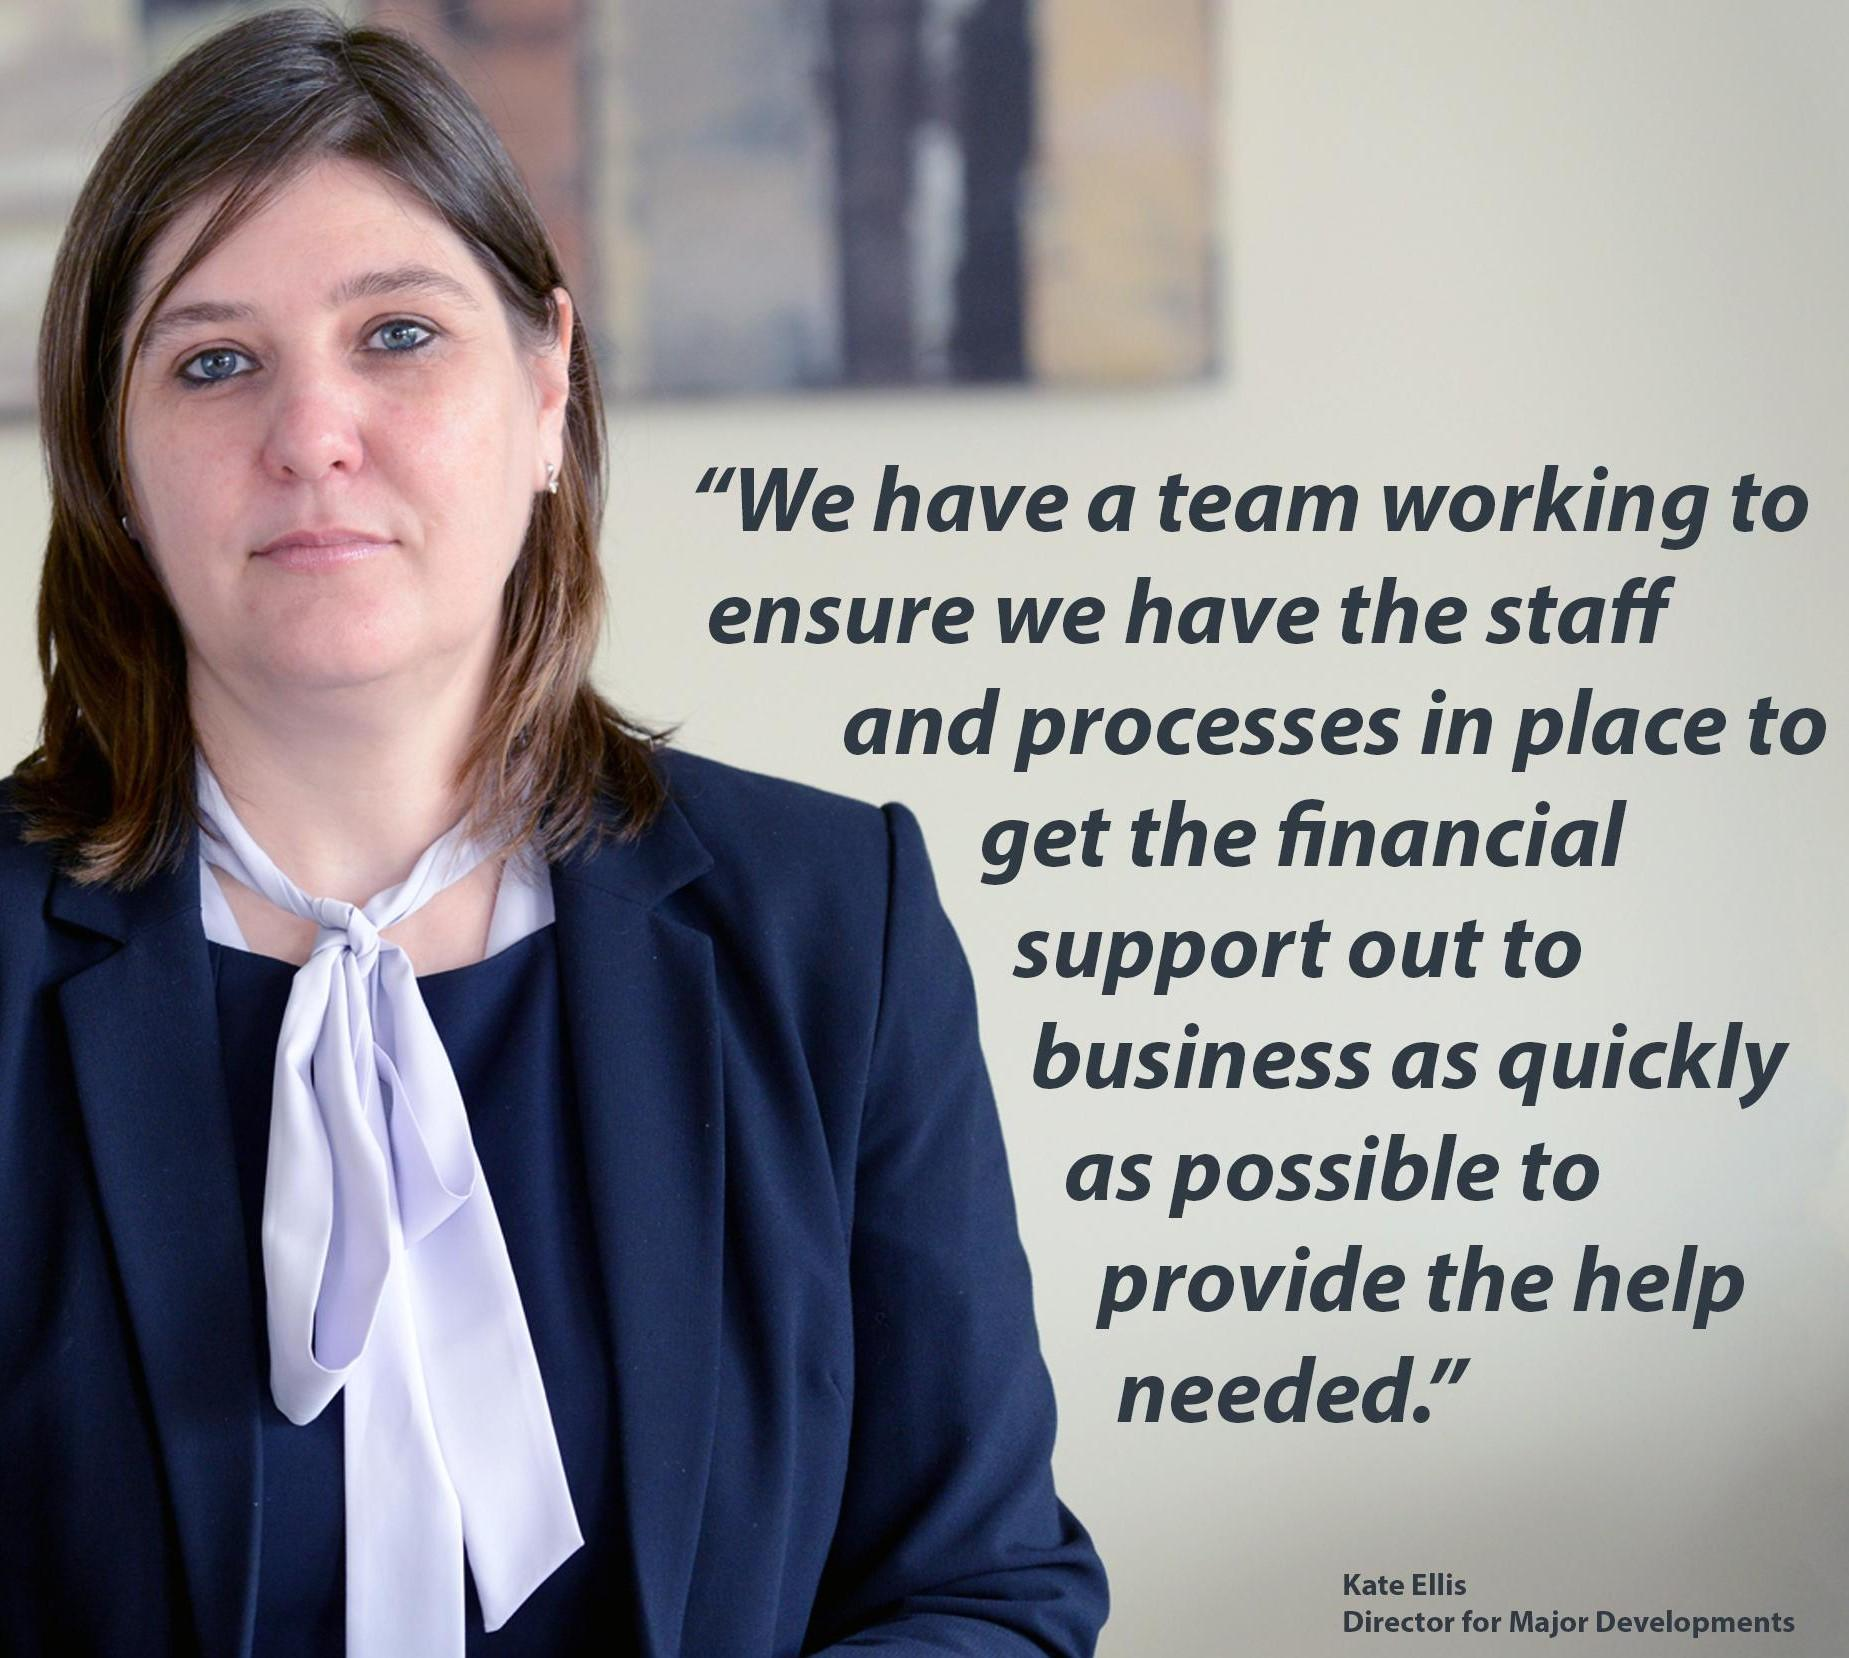 Kate Ellis. We have a team working to ensure that we have staff and processes in place to get the financial support out to business as quickly as possible to provide the help needed.